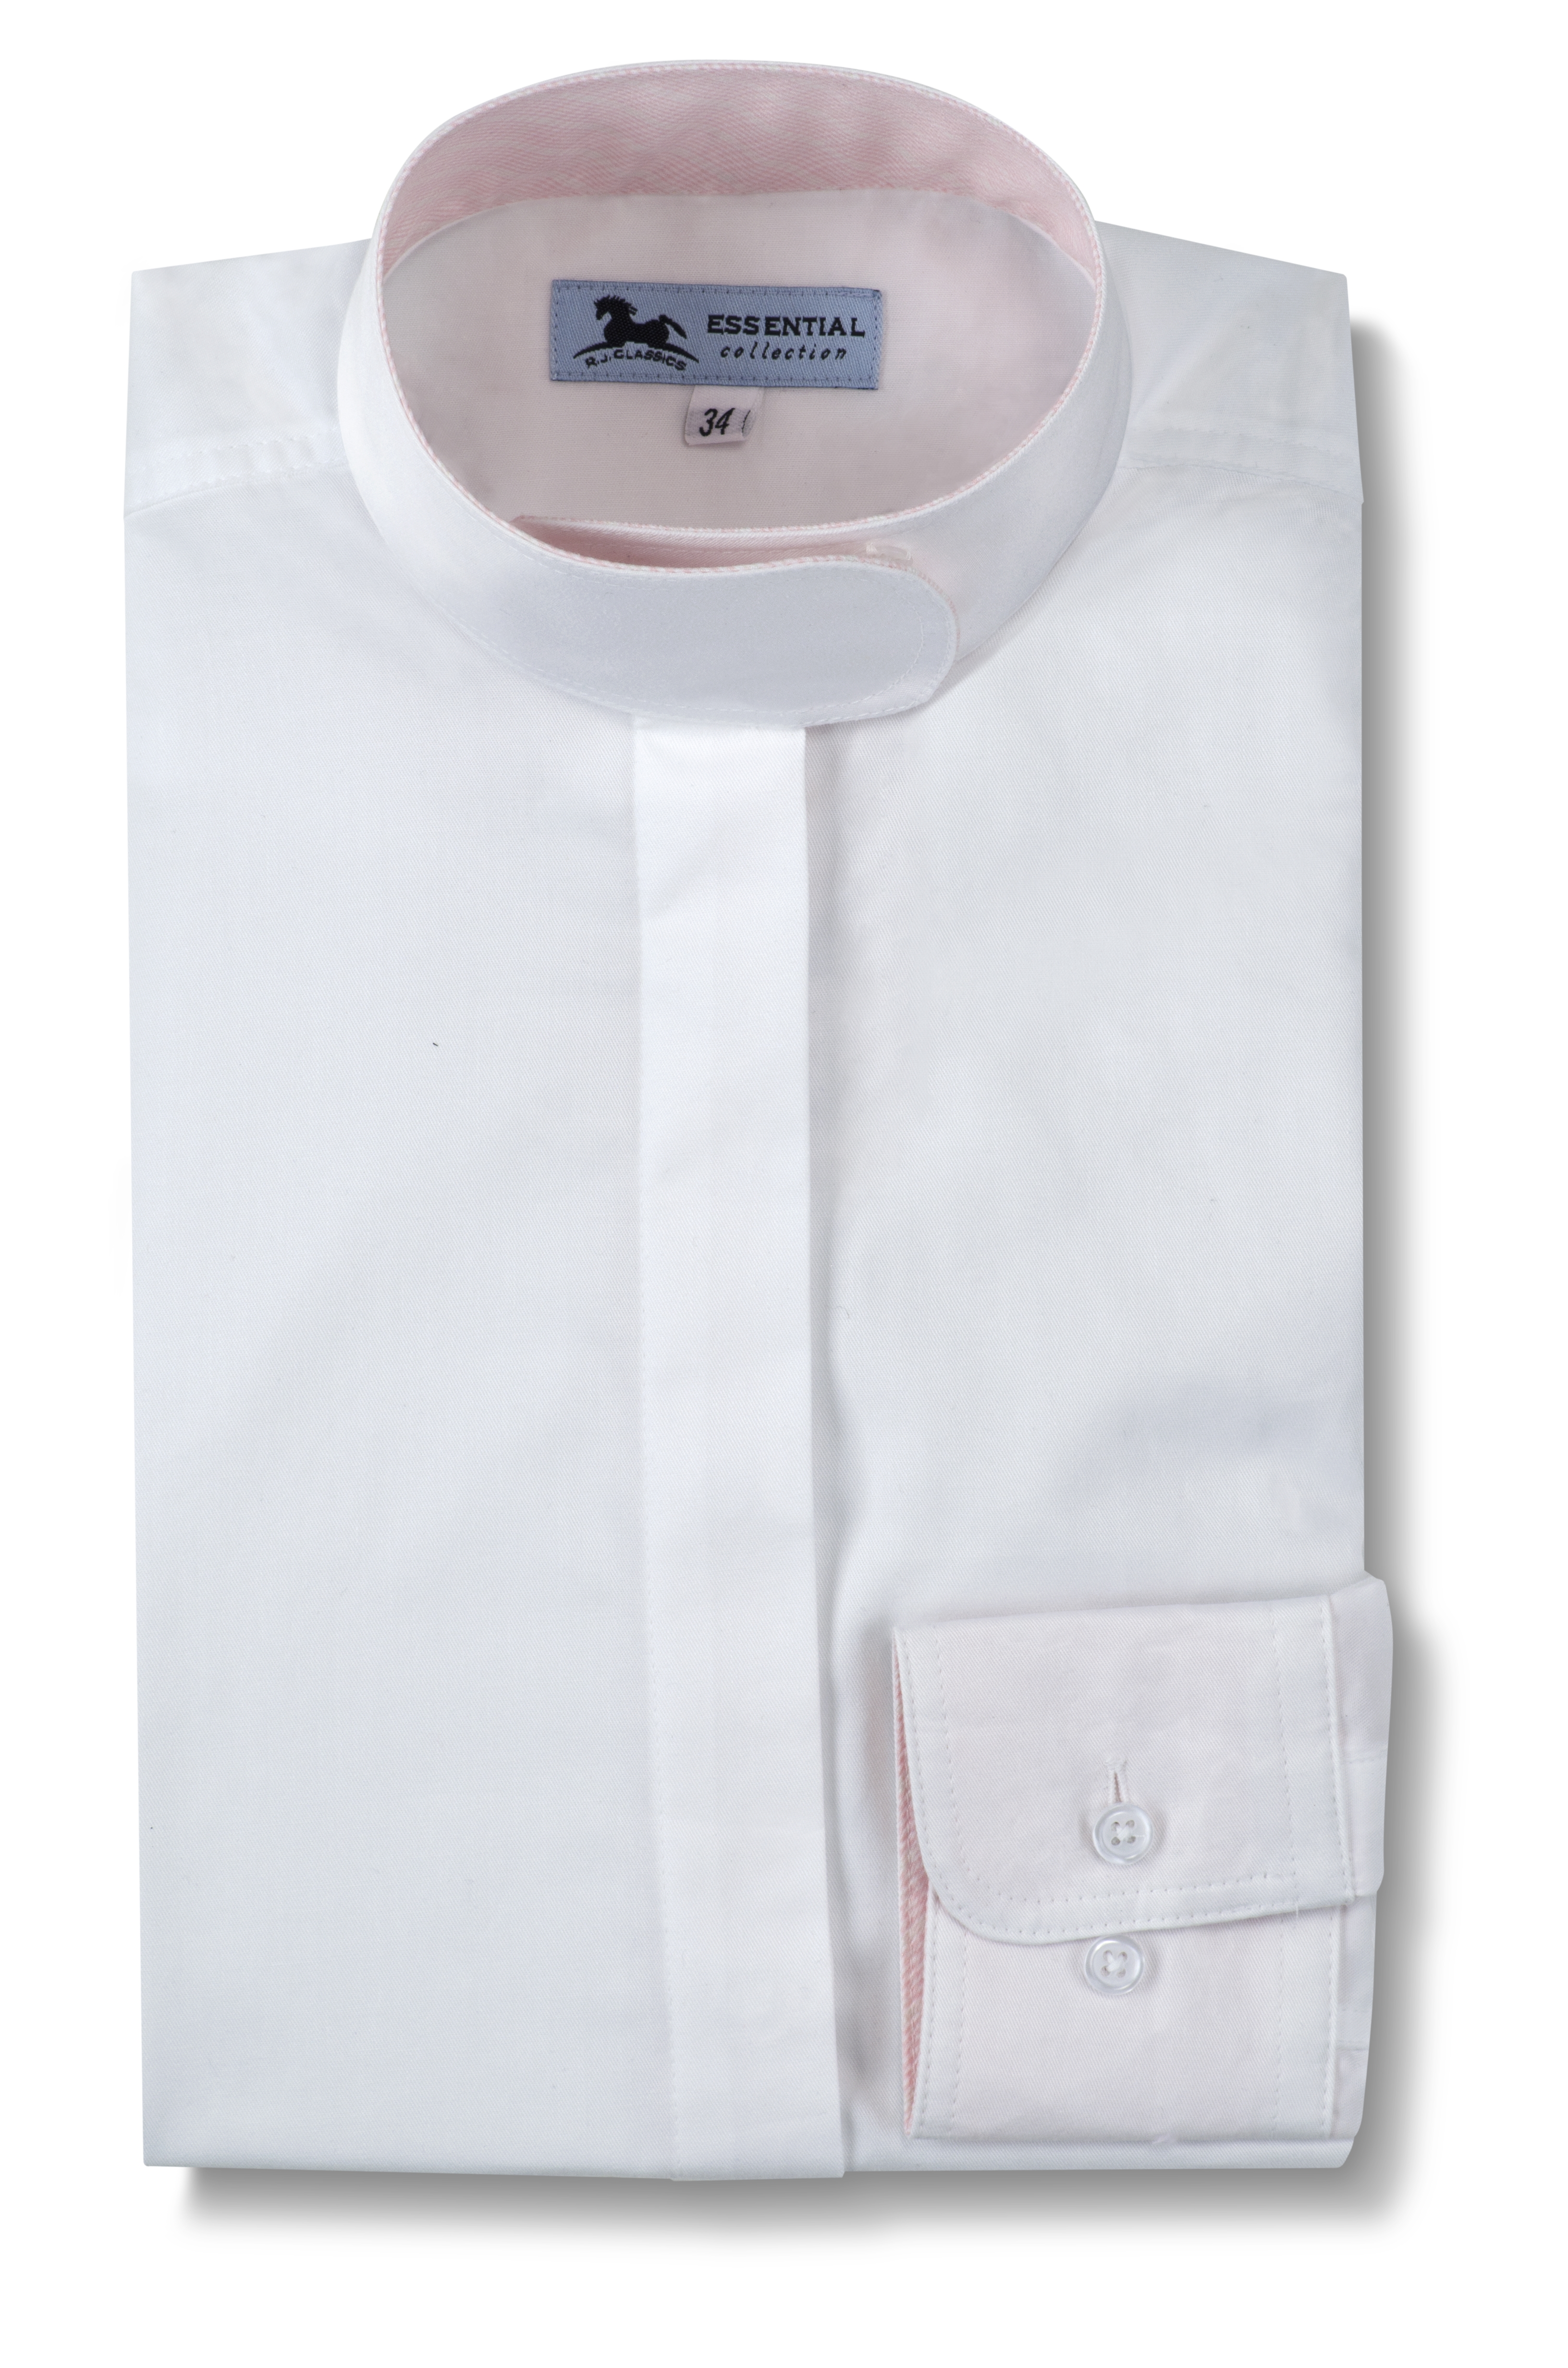 RJ Classics Ladies Essential Show Shirt